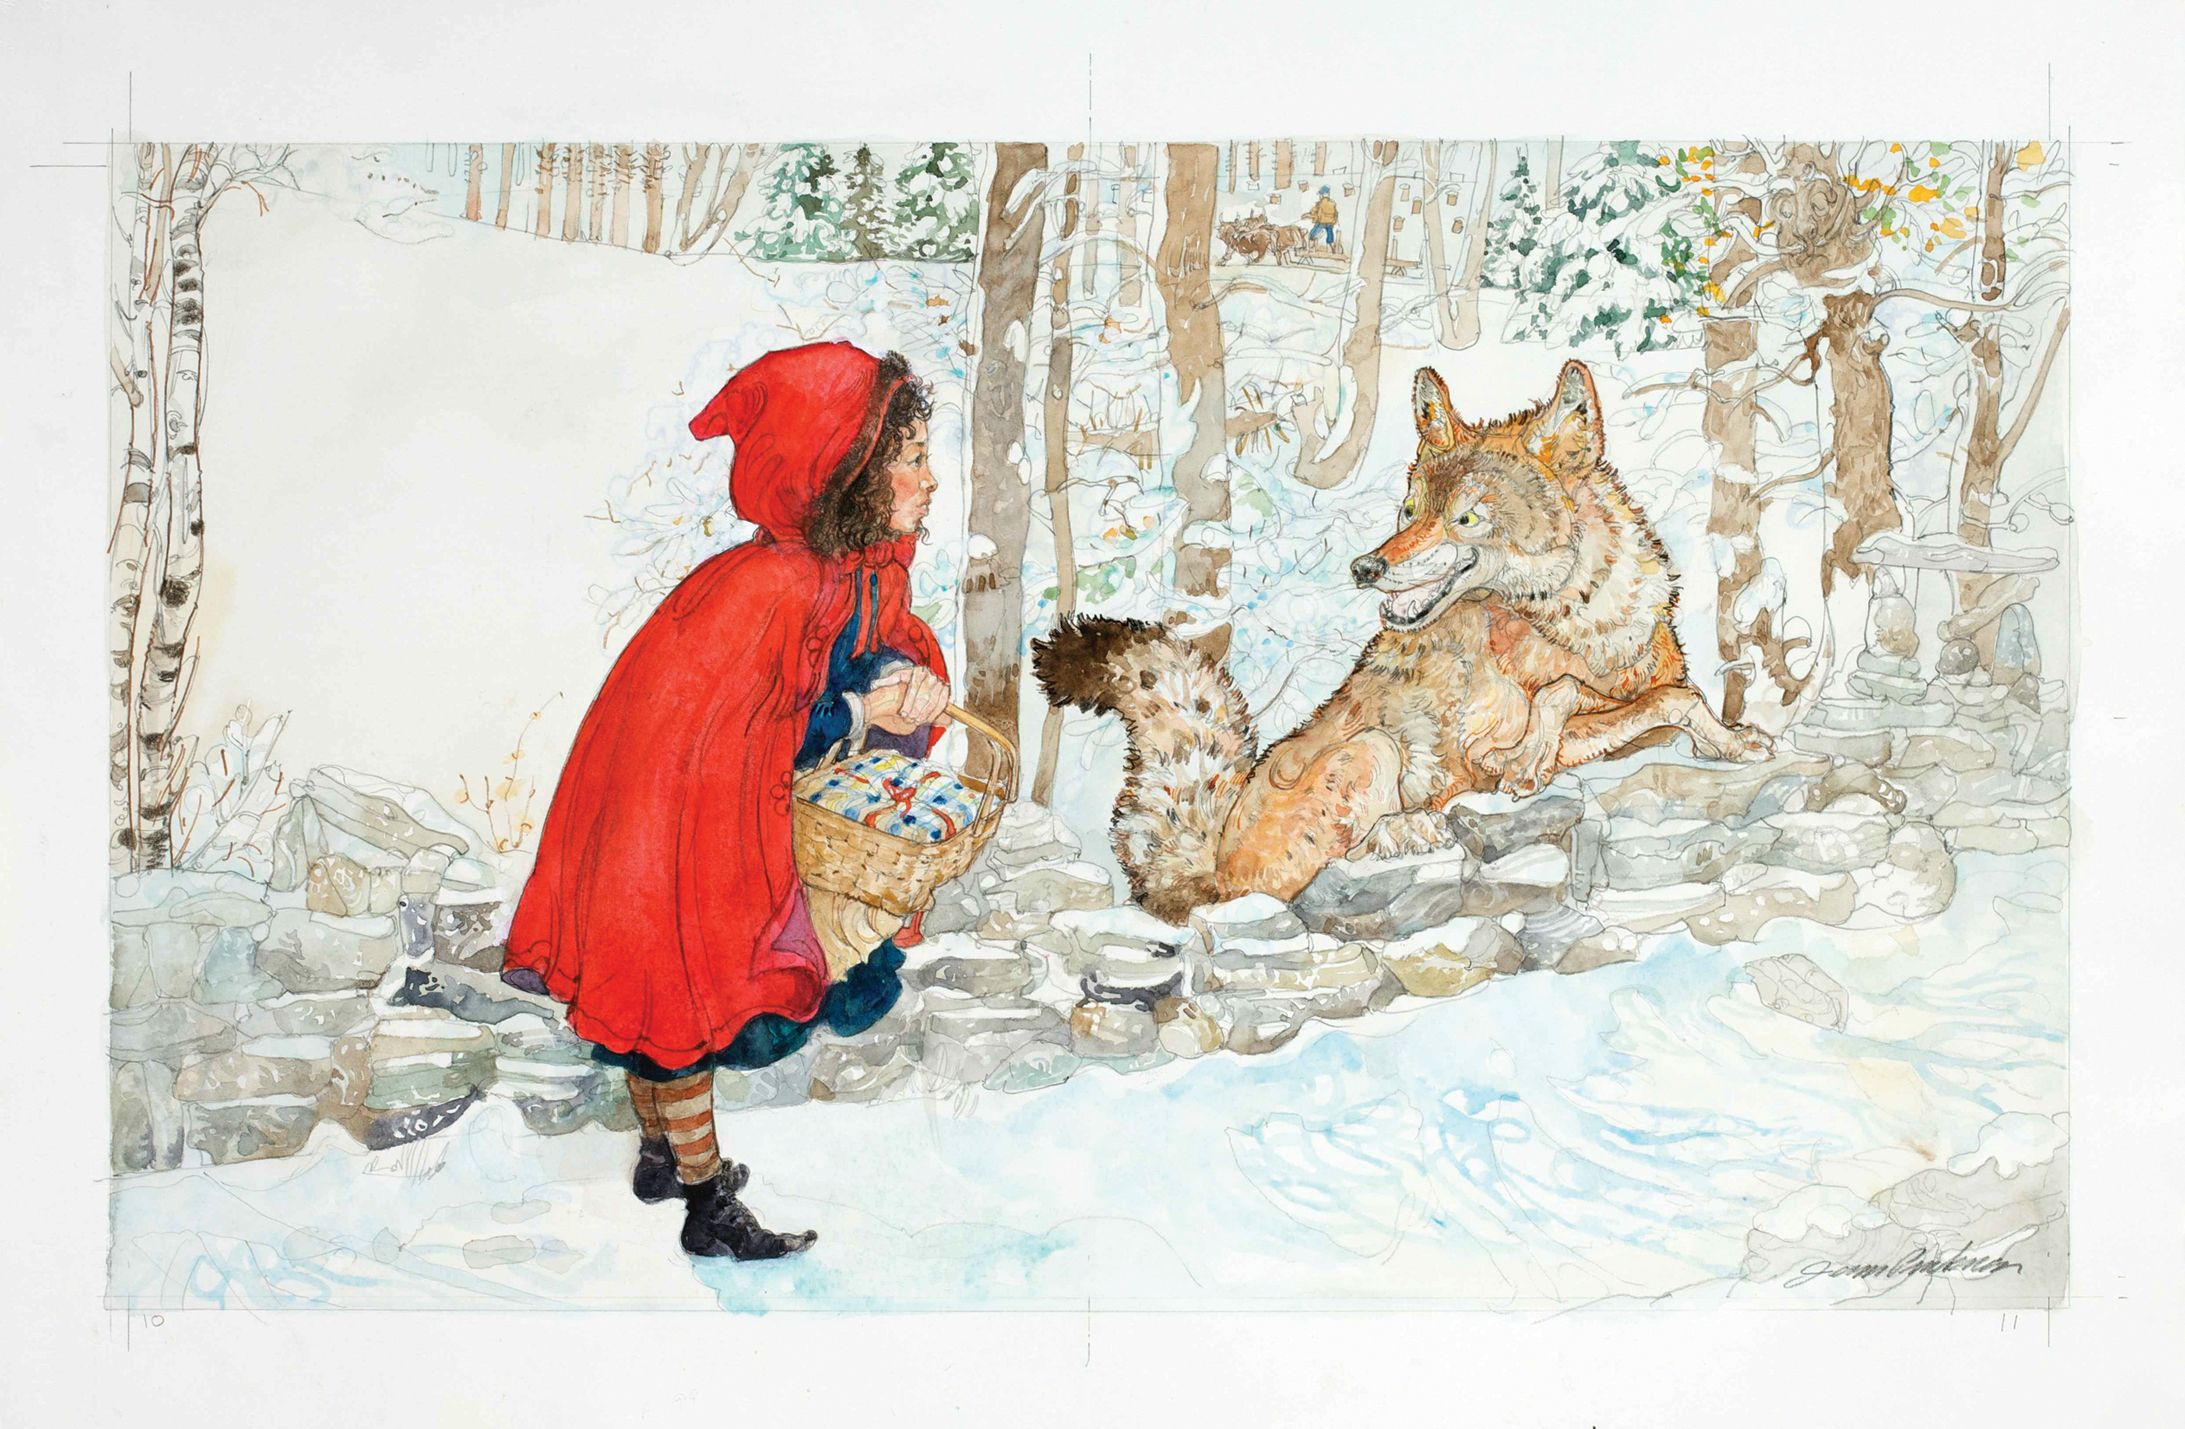 Red Riding Hood and the wolf. Jerry Pinkney